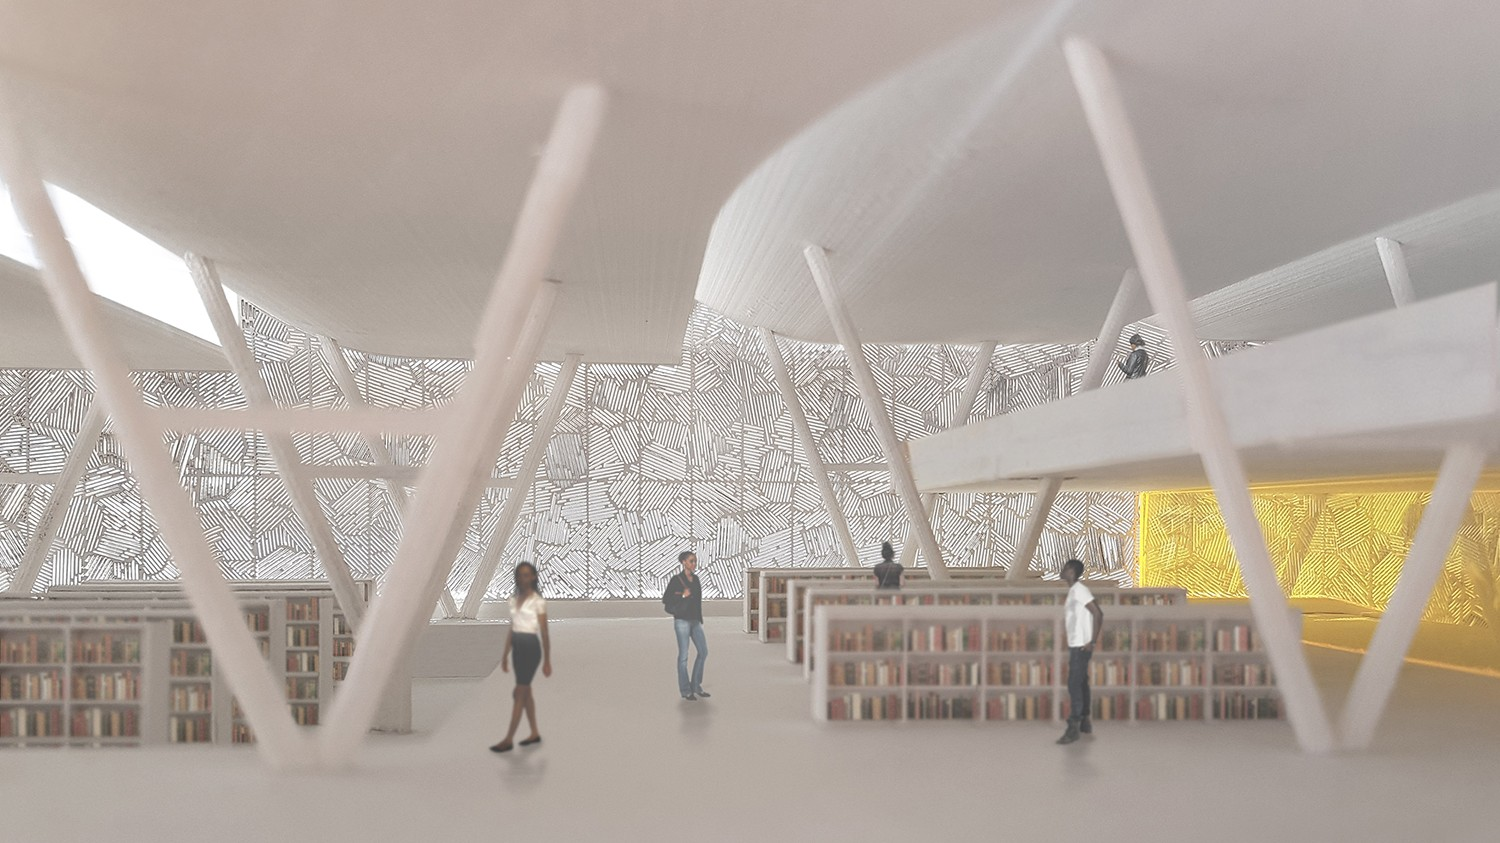 https://stevenholl.sfo2.digitaloceanspaces.com/uploads/projects/project-images/StevenHollArchitects_Malawi_InteriorView_WH.jpg